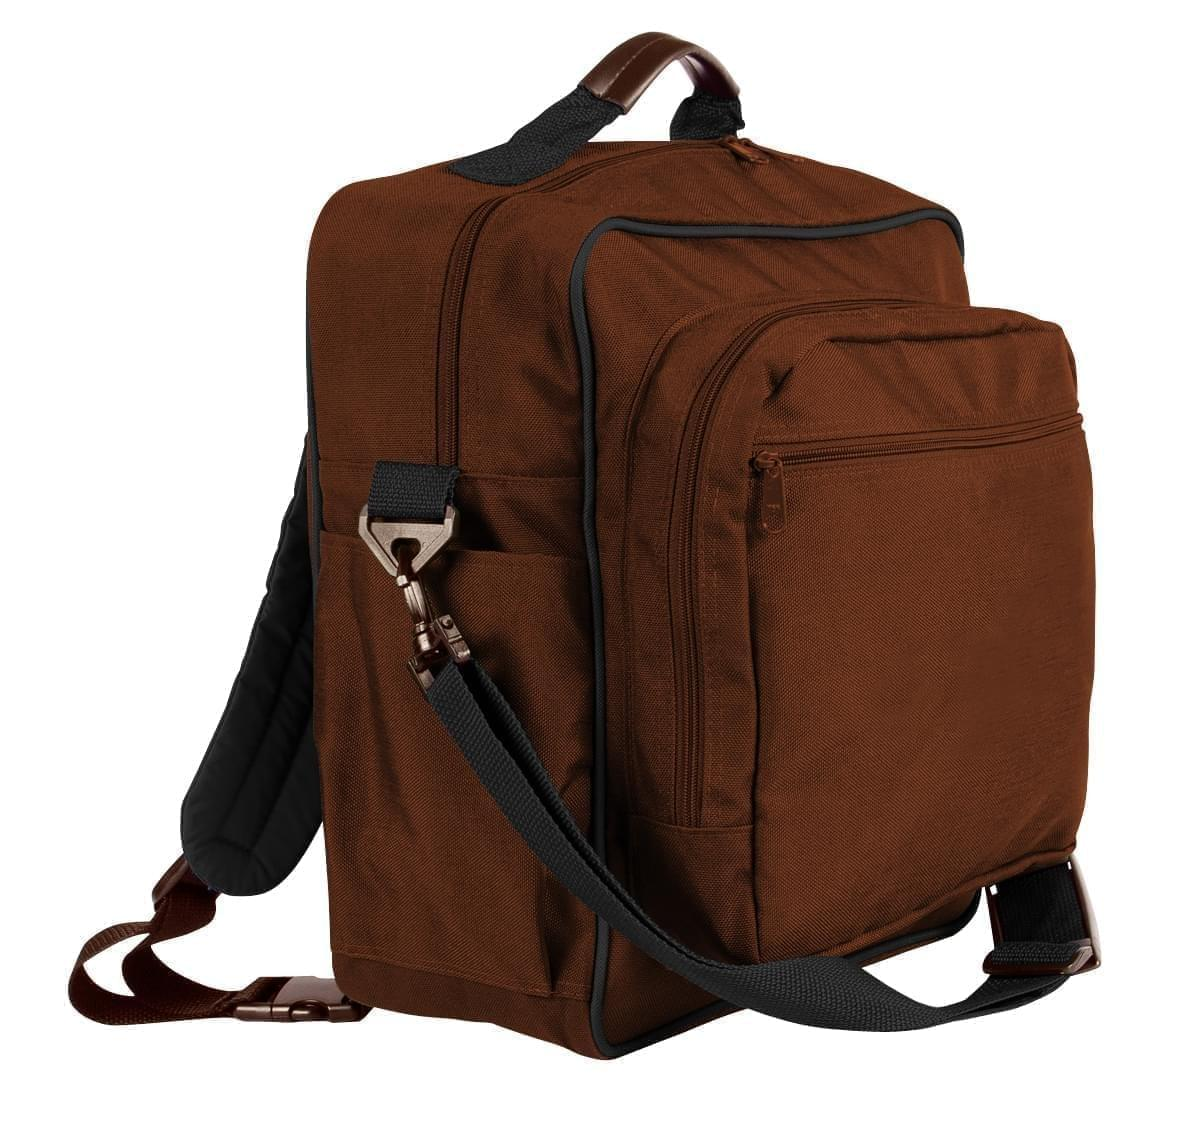 USA Made Poly Daypack Rucksacks, Brown-Black, 1070-APR